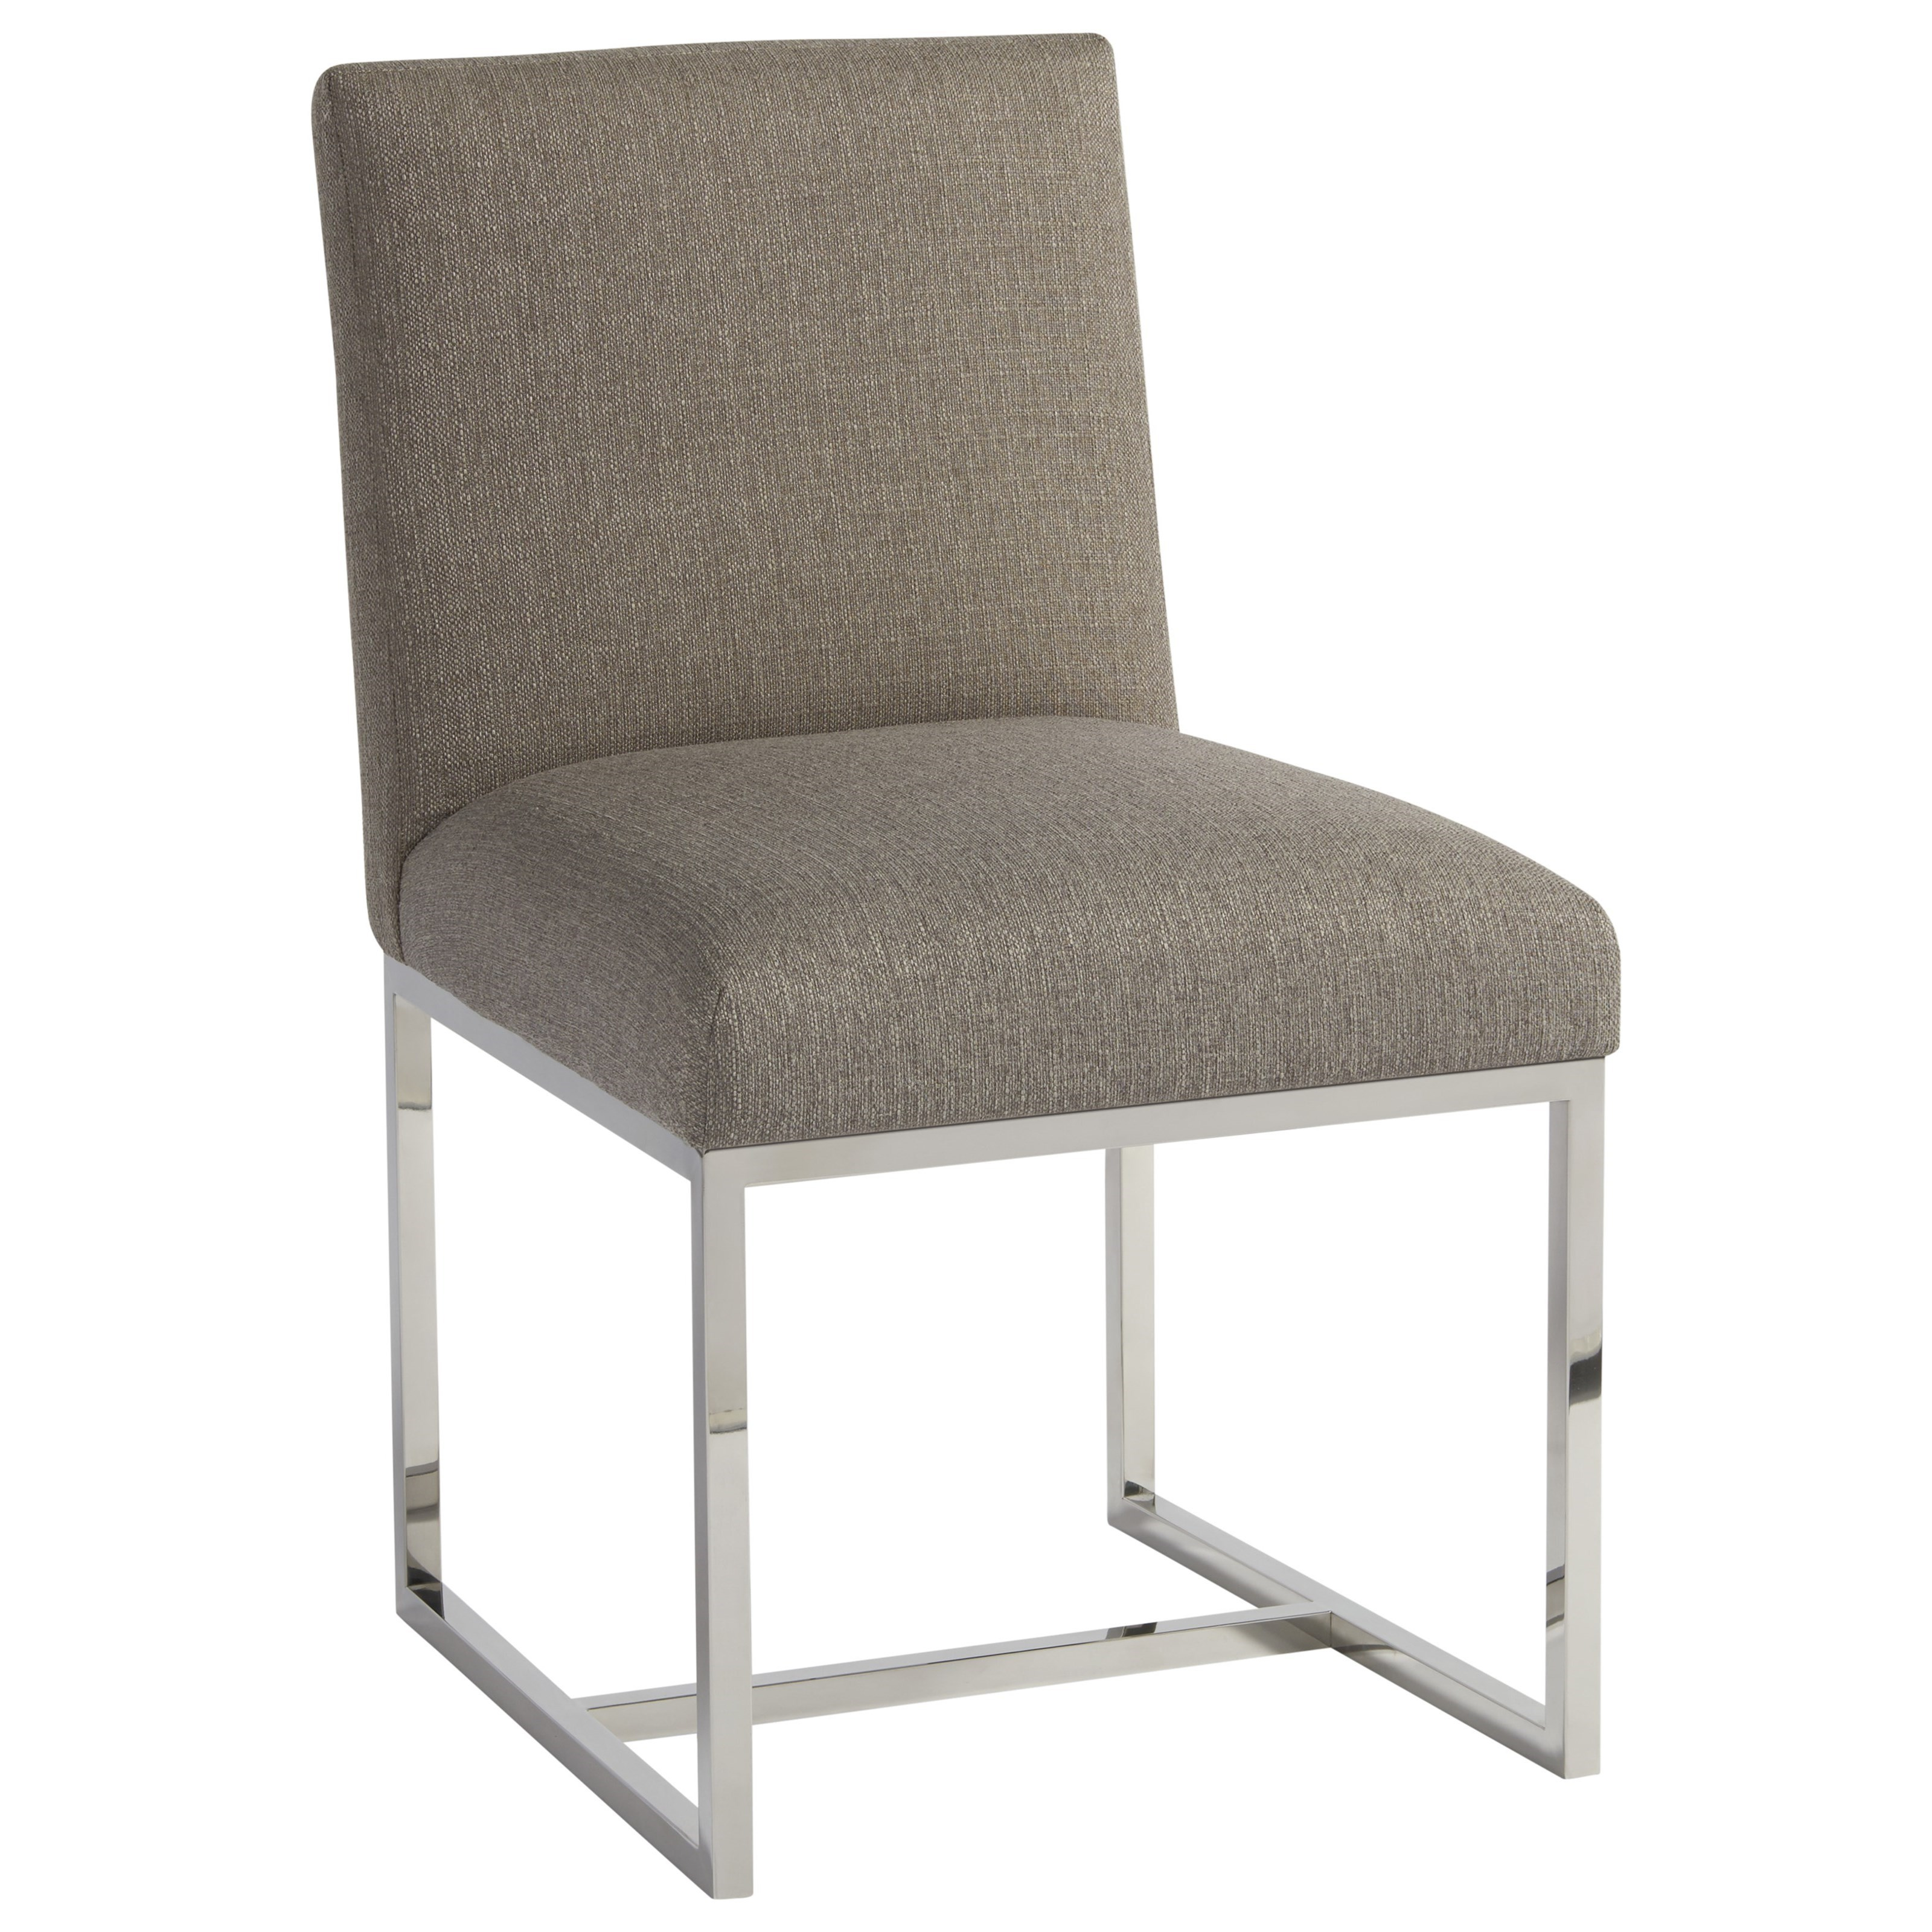 Zephyr Cooper Side Chair by Universal at Baer's Furniture